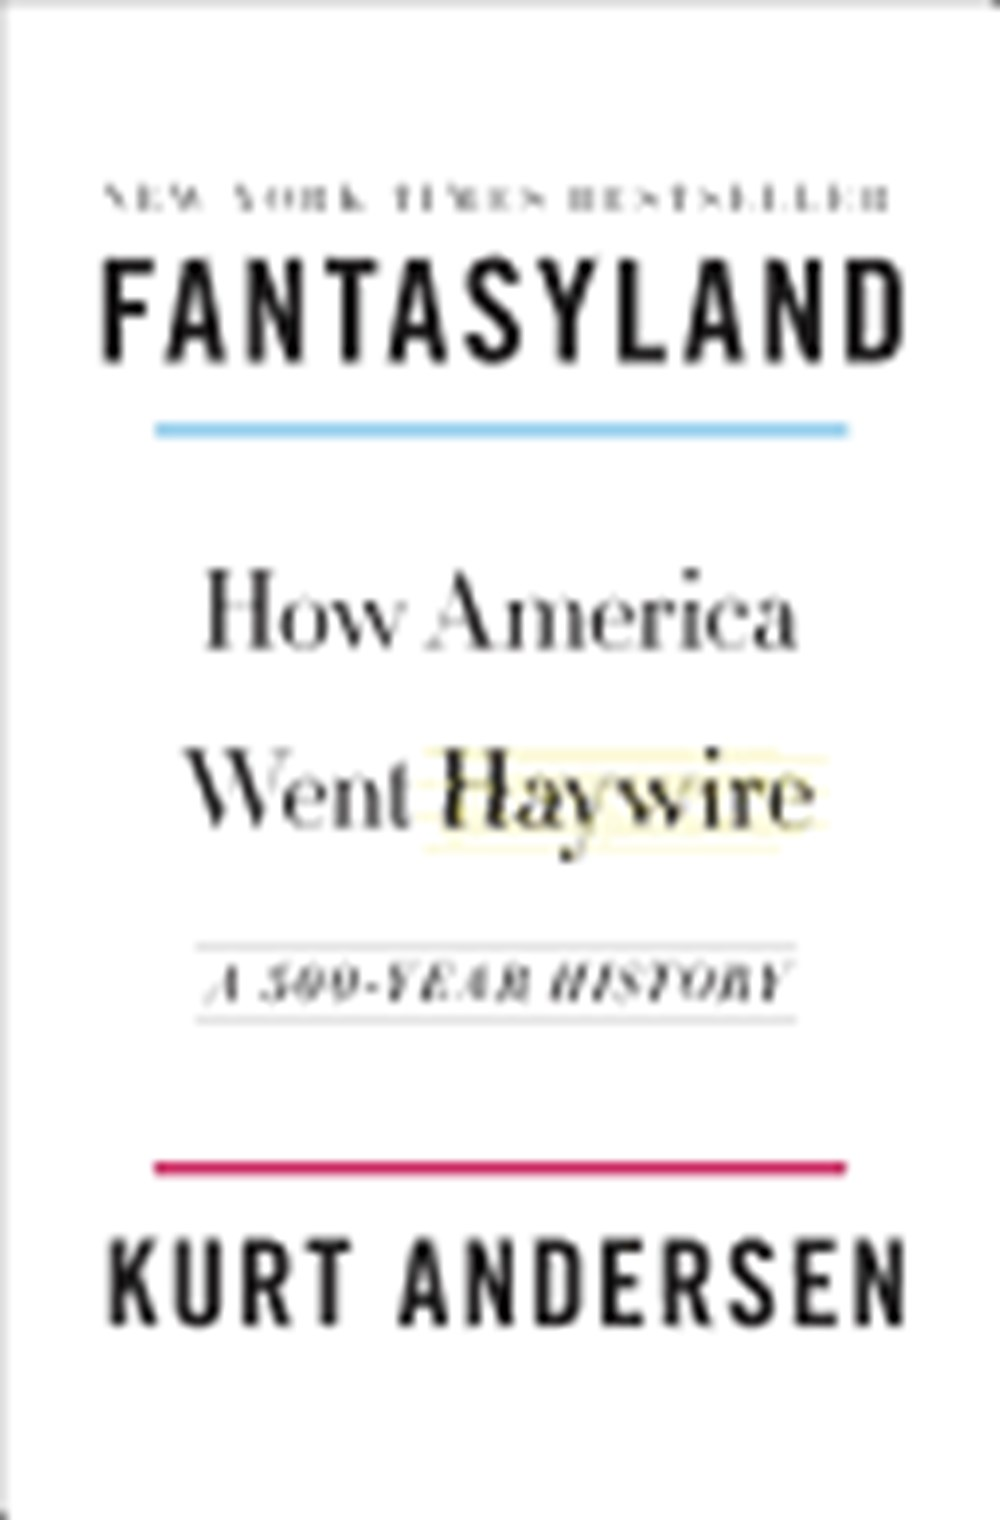 Fantasyland How America Went Haywire: A 500-Year History